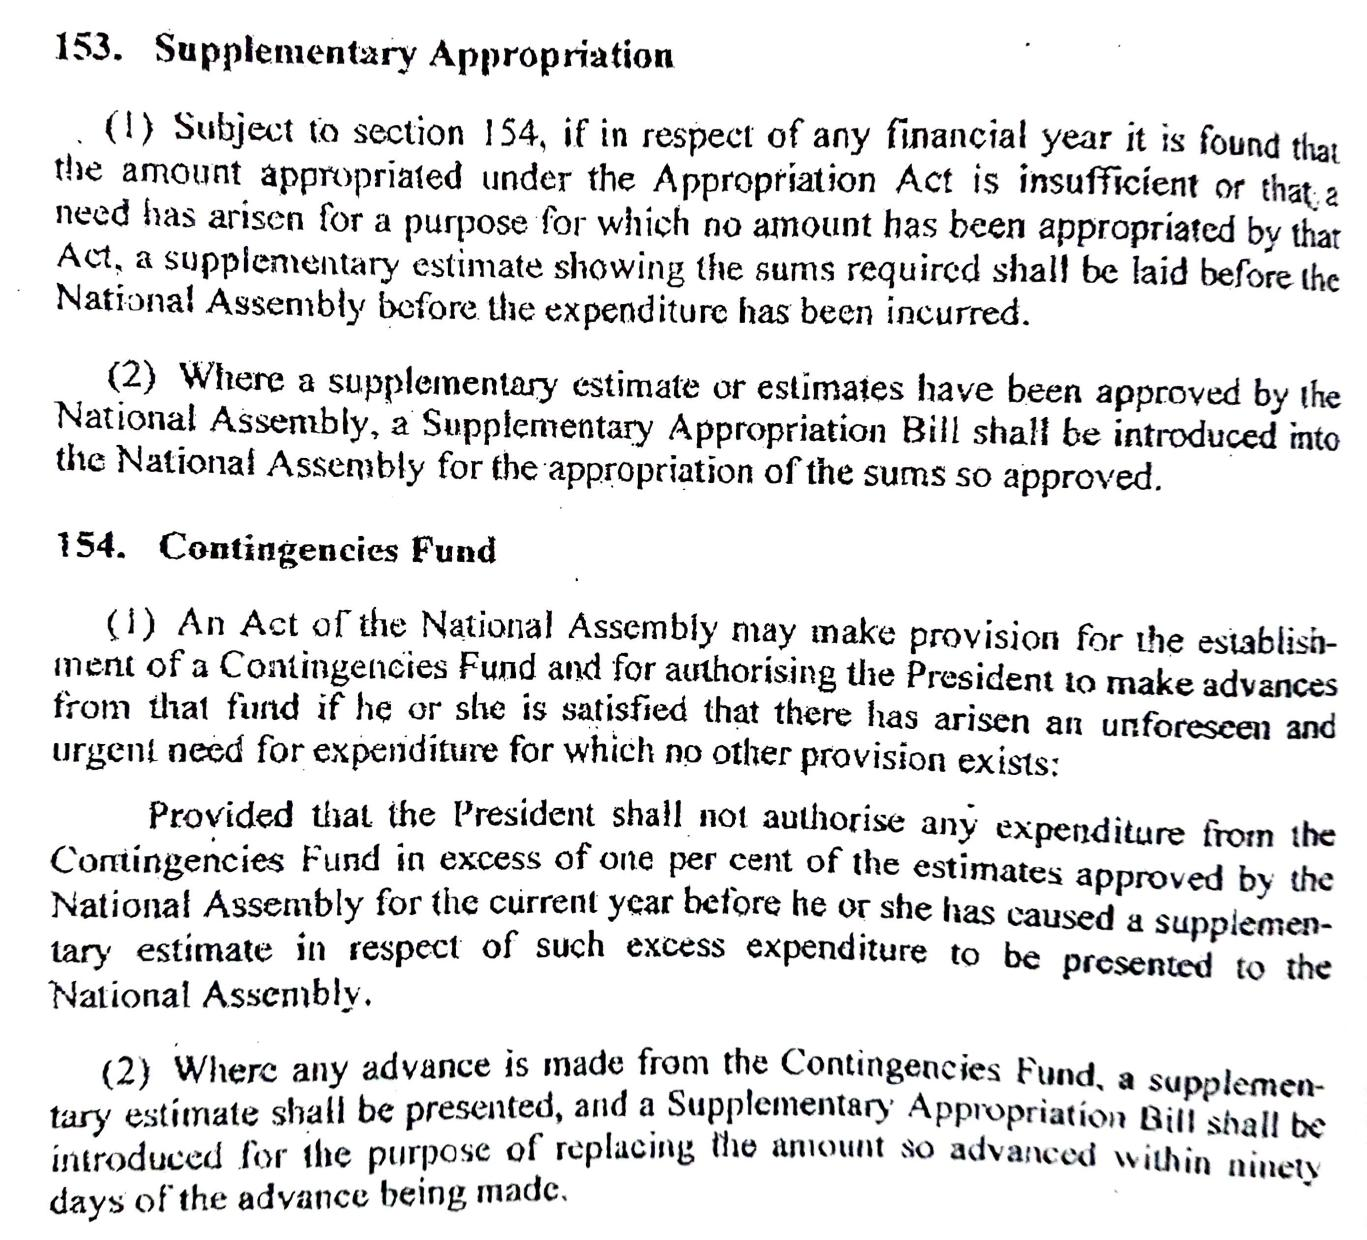 Supplementary Bill and Contingency Fund